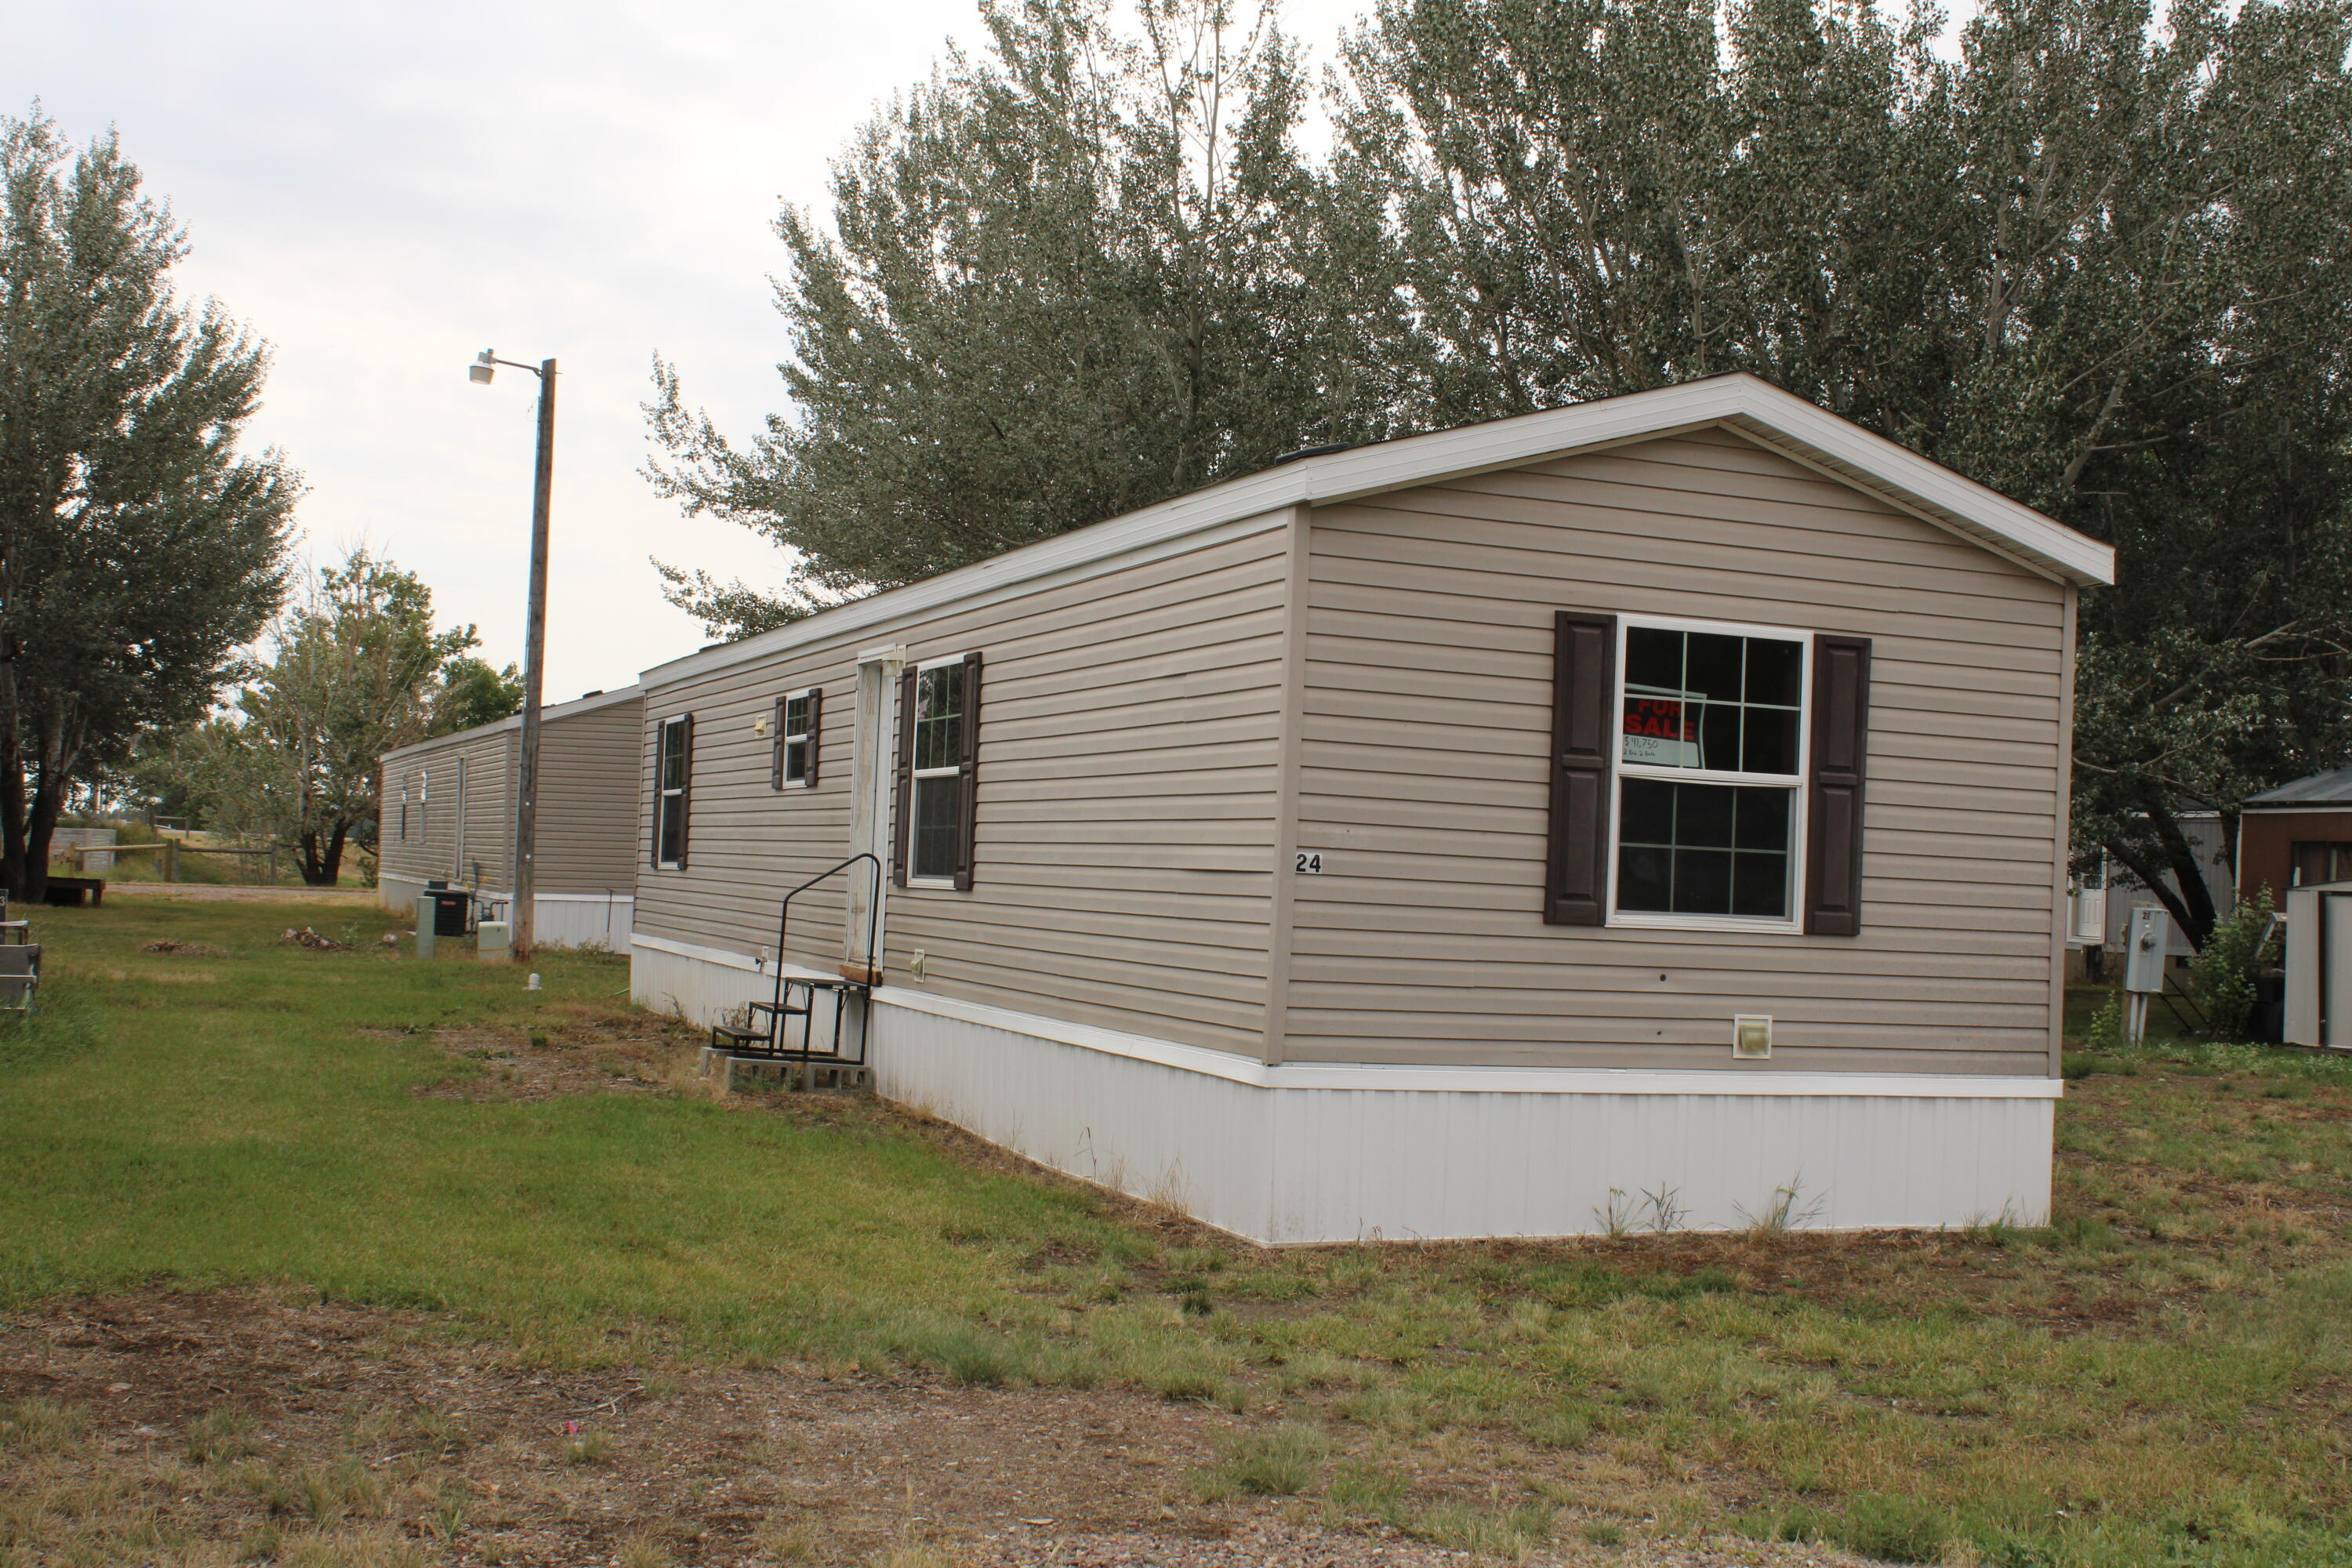 This 2012, 2 bed, 2 bath Mobile home is located in Vaughn only 12 miles from Great Falls. Interstate Highway the whole way! It is located in the Beautiful Red Sky Community mobile home park. Park has been under new management with an onsite manager. Beautiful Rural setting with mature trees.Vaughn has a grocery stores, Restaurant/bars, and the school is within walking distance.Buyer must be accepted unto the park.Home must stay in the park for 24 mos after Closing. Lot Rent is: $390/mo.Fences and 2 non aggressive breed dogs are allowed.